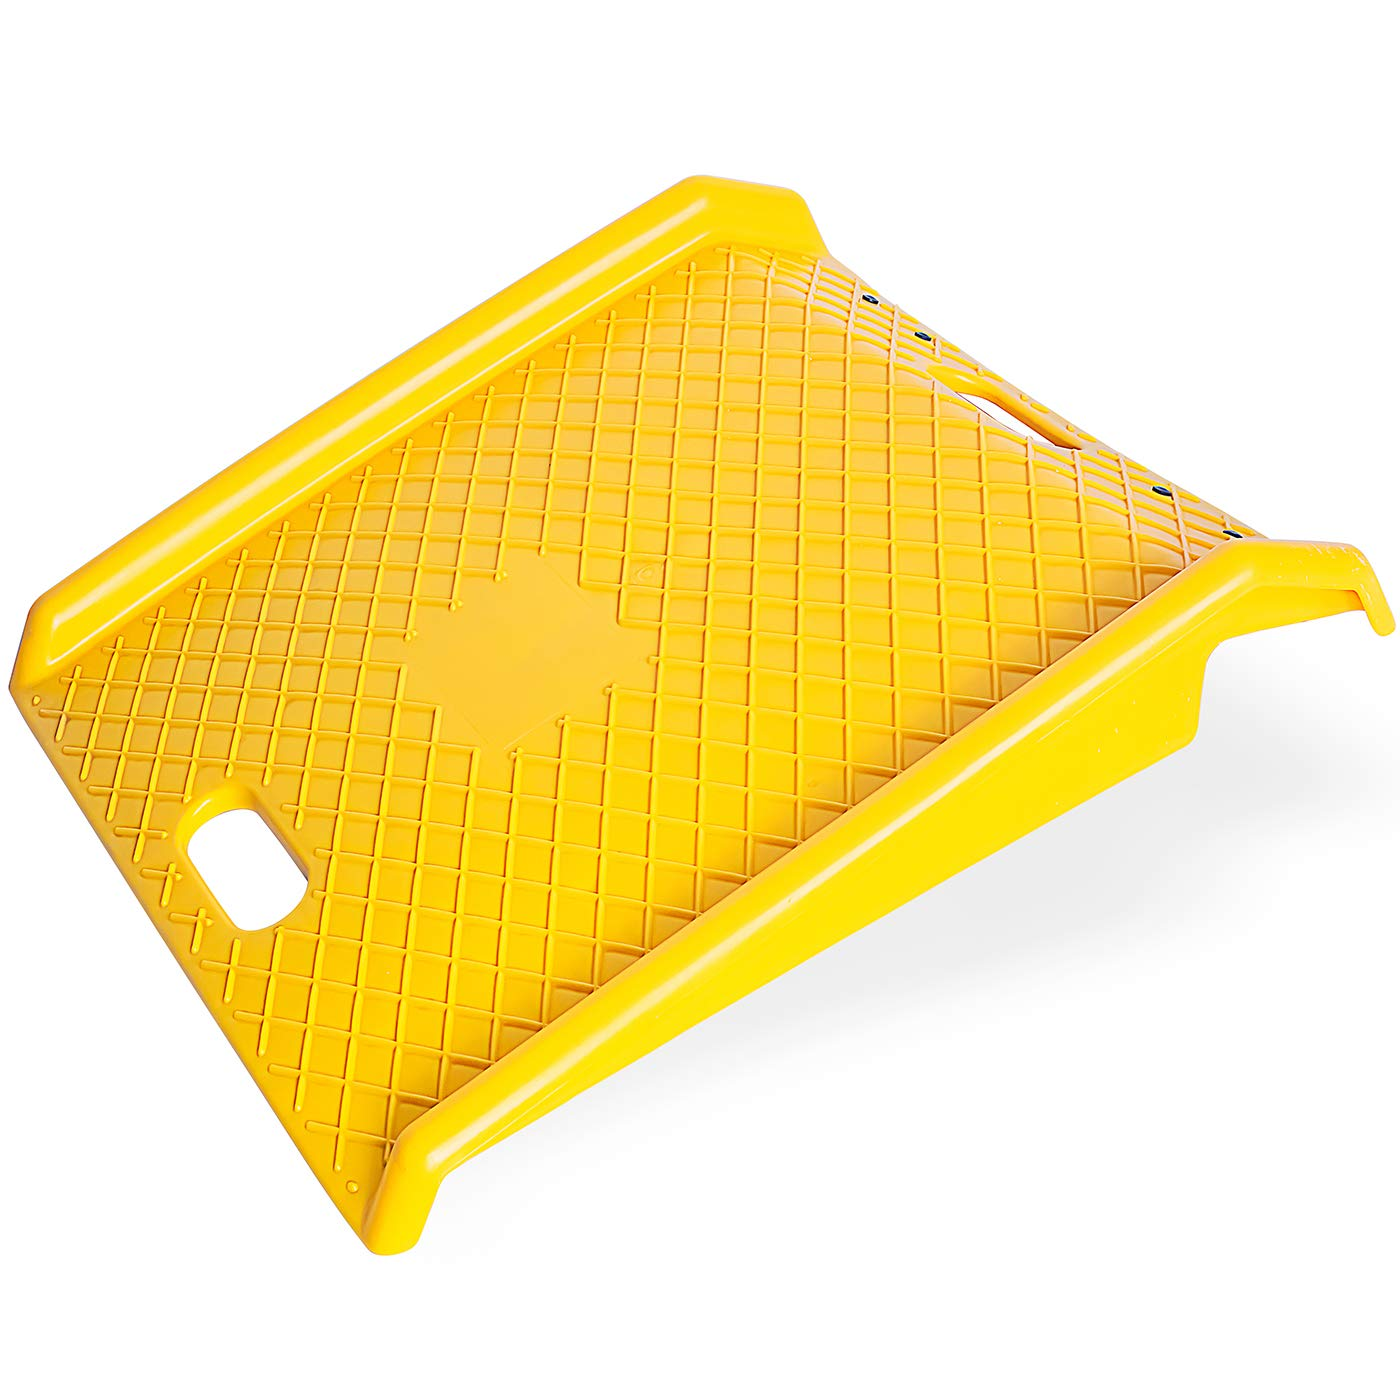 OxGord Curb Ramp- Heavy Duty 1000 Lbs Weight Capacity - Portable Assistance for Delivery, Hand Trucks, Carts, Wheelchairs, Walkers, Strollers